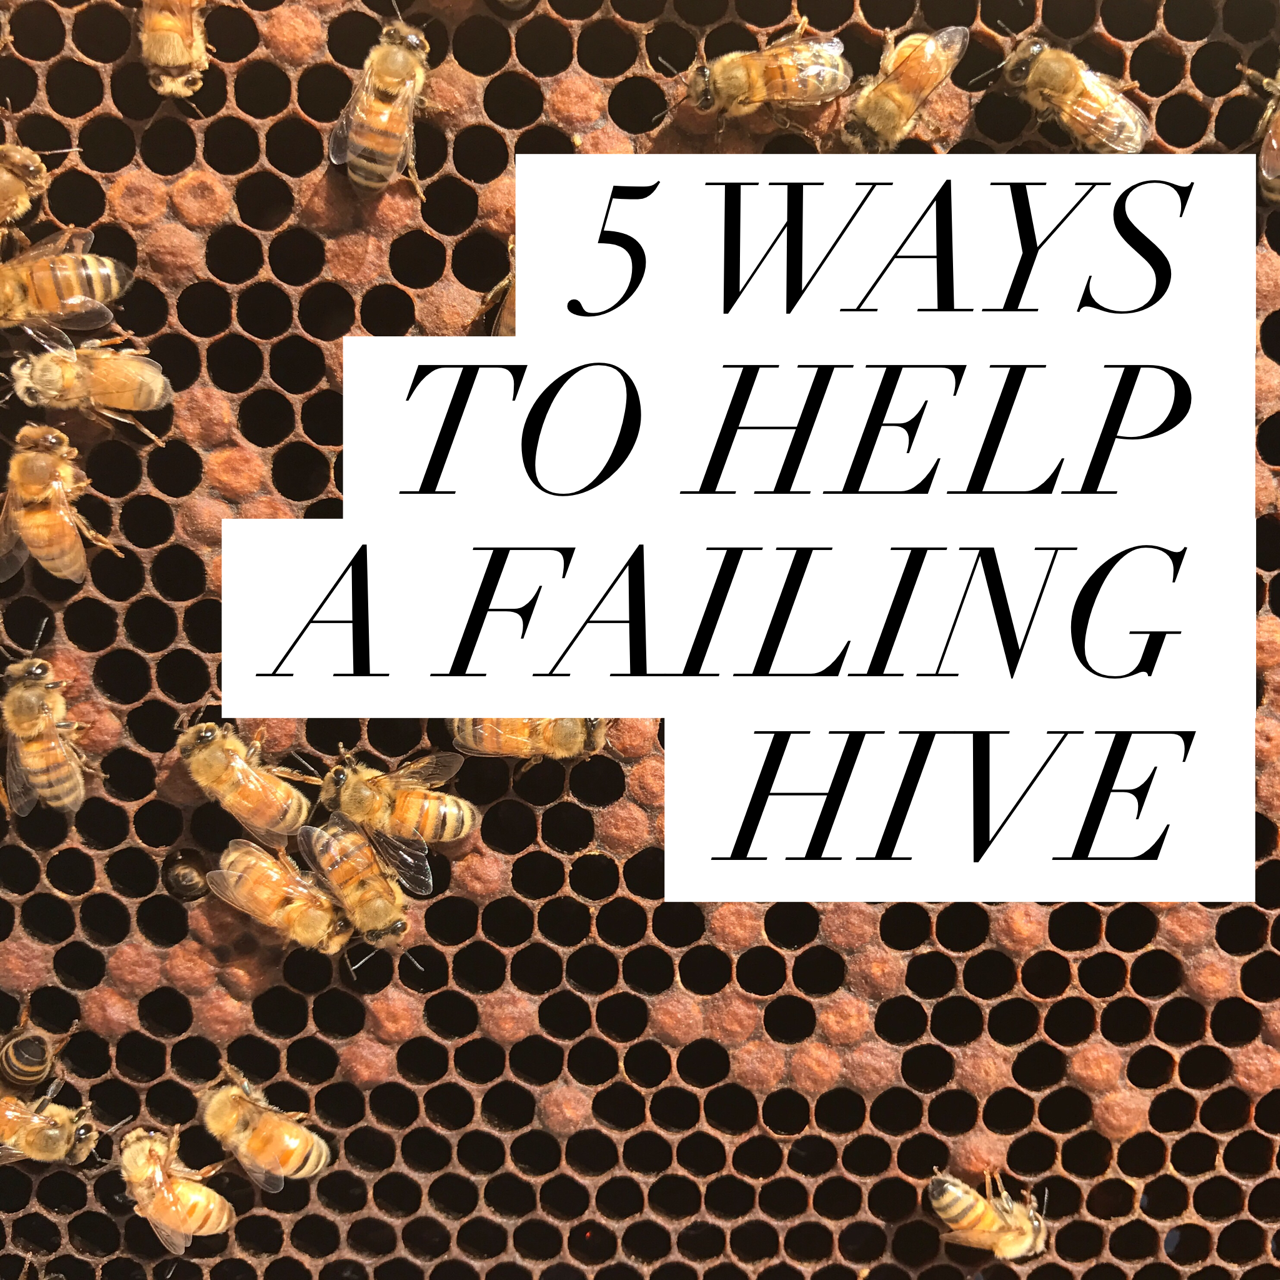 5 WAYS TO SAVE A FAILING HIVE